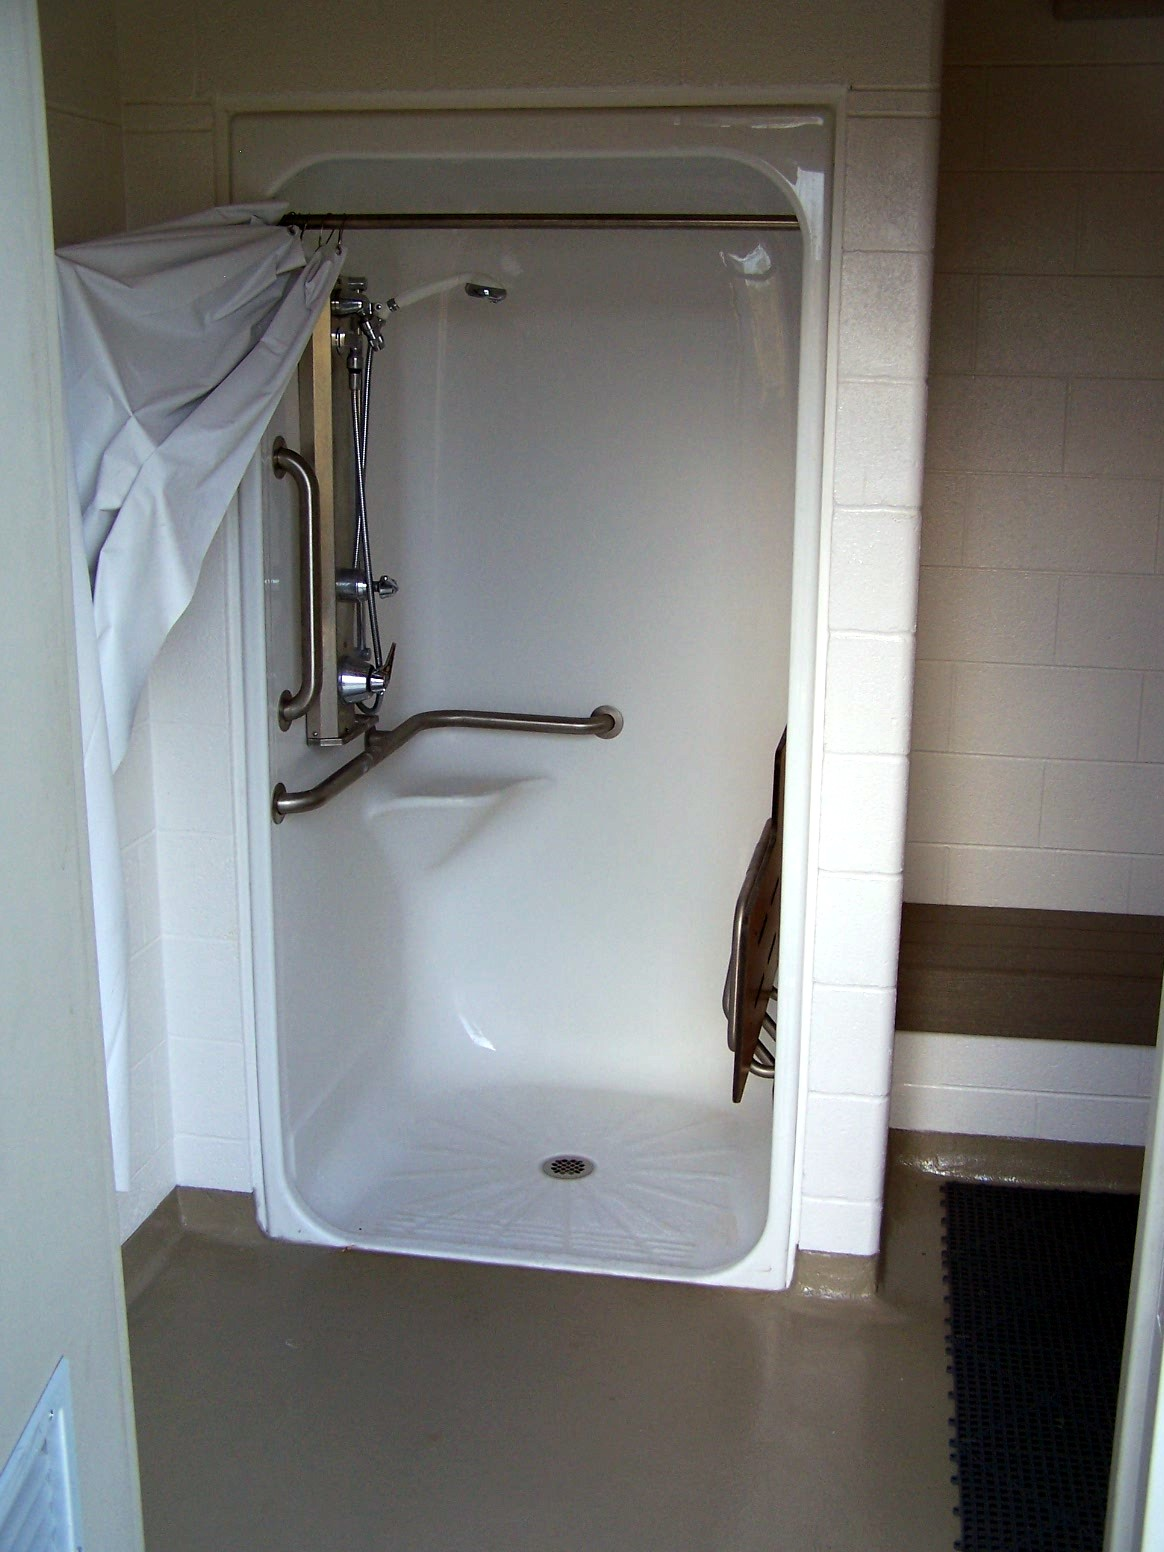 File:Accessible shower stall.jpg - Wikimedia Commons